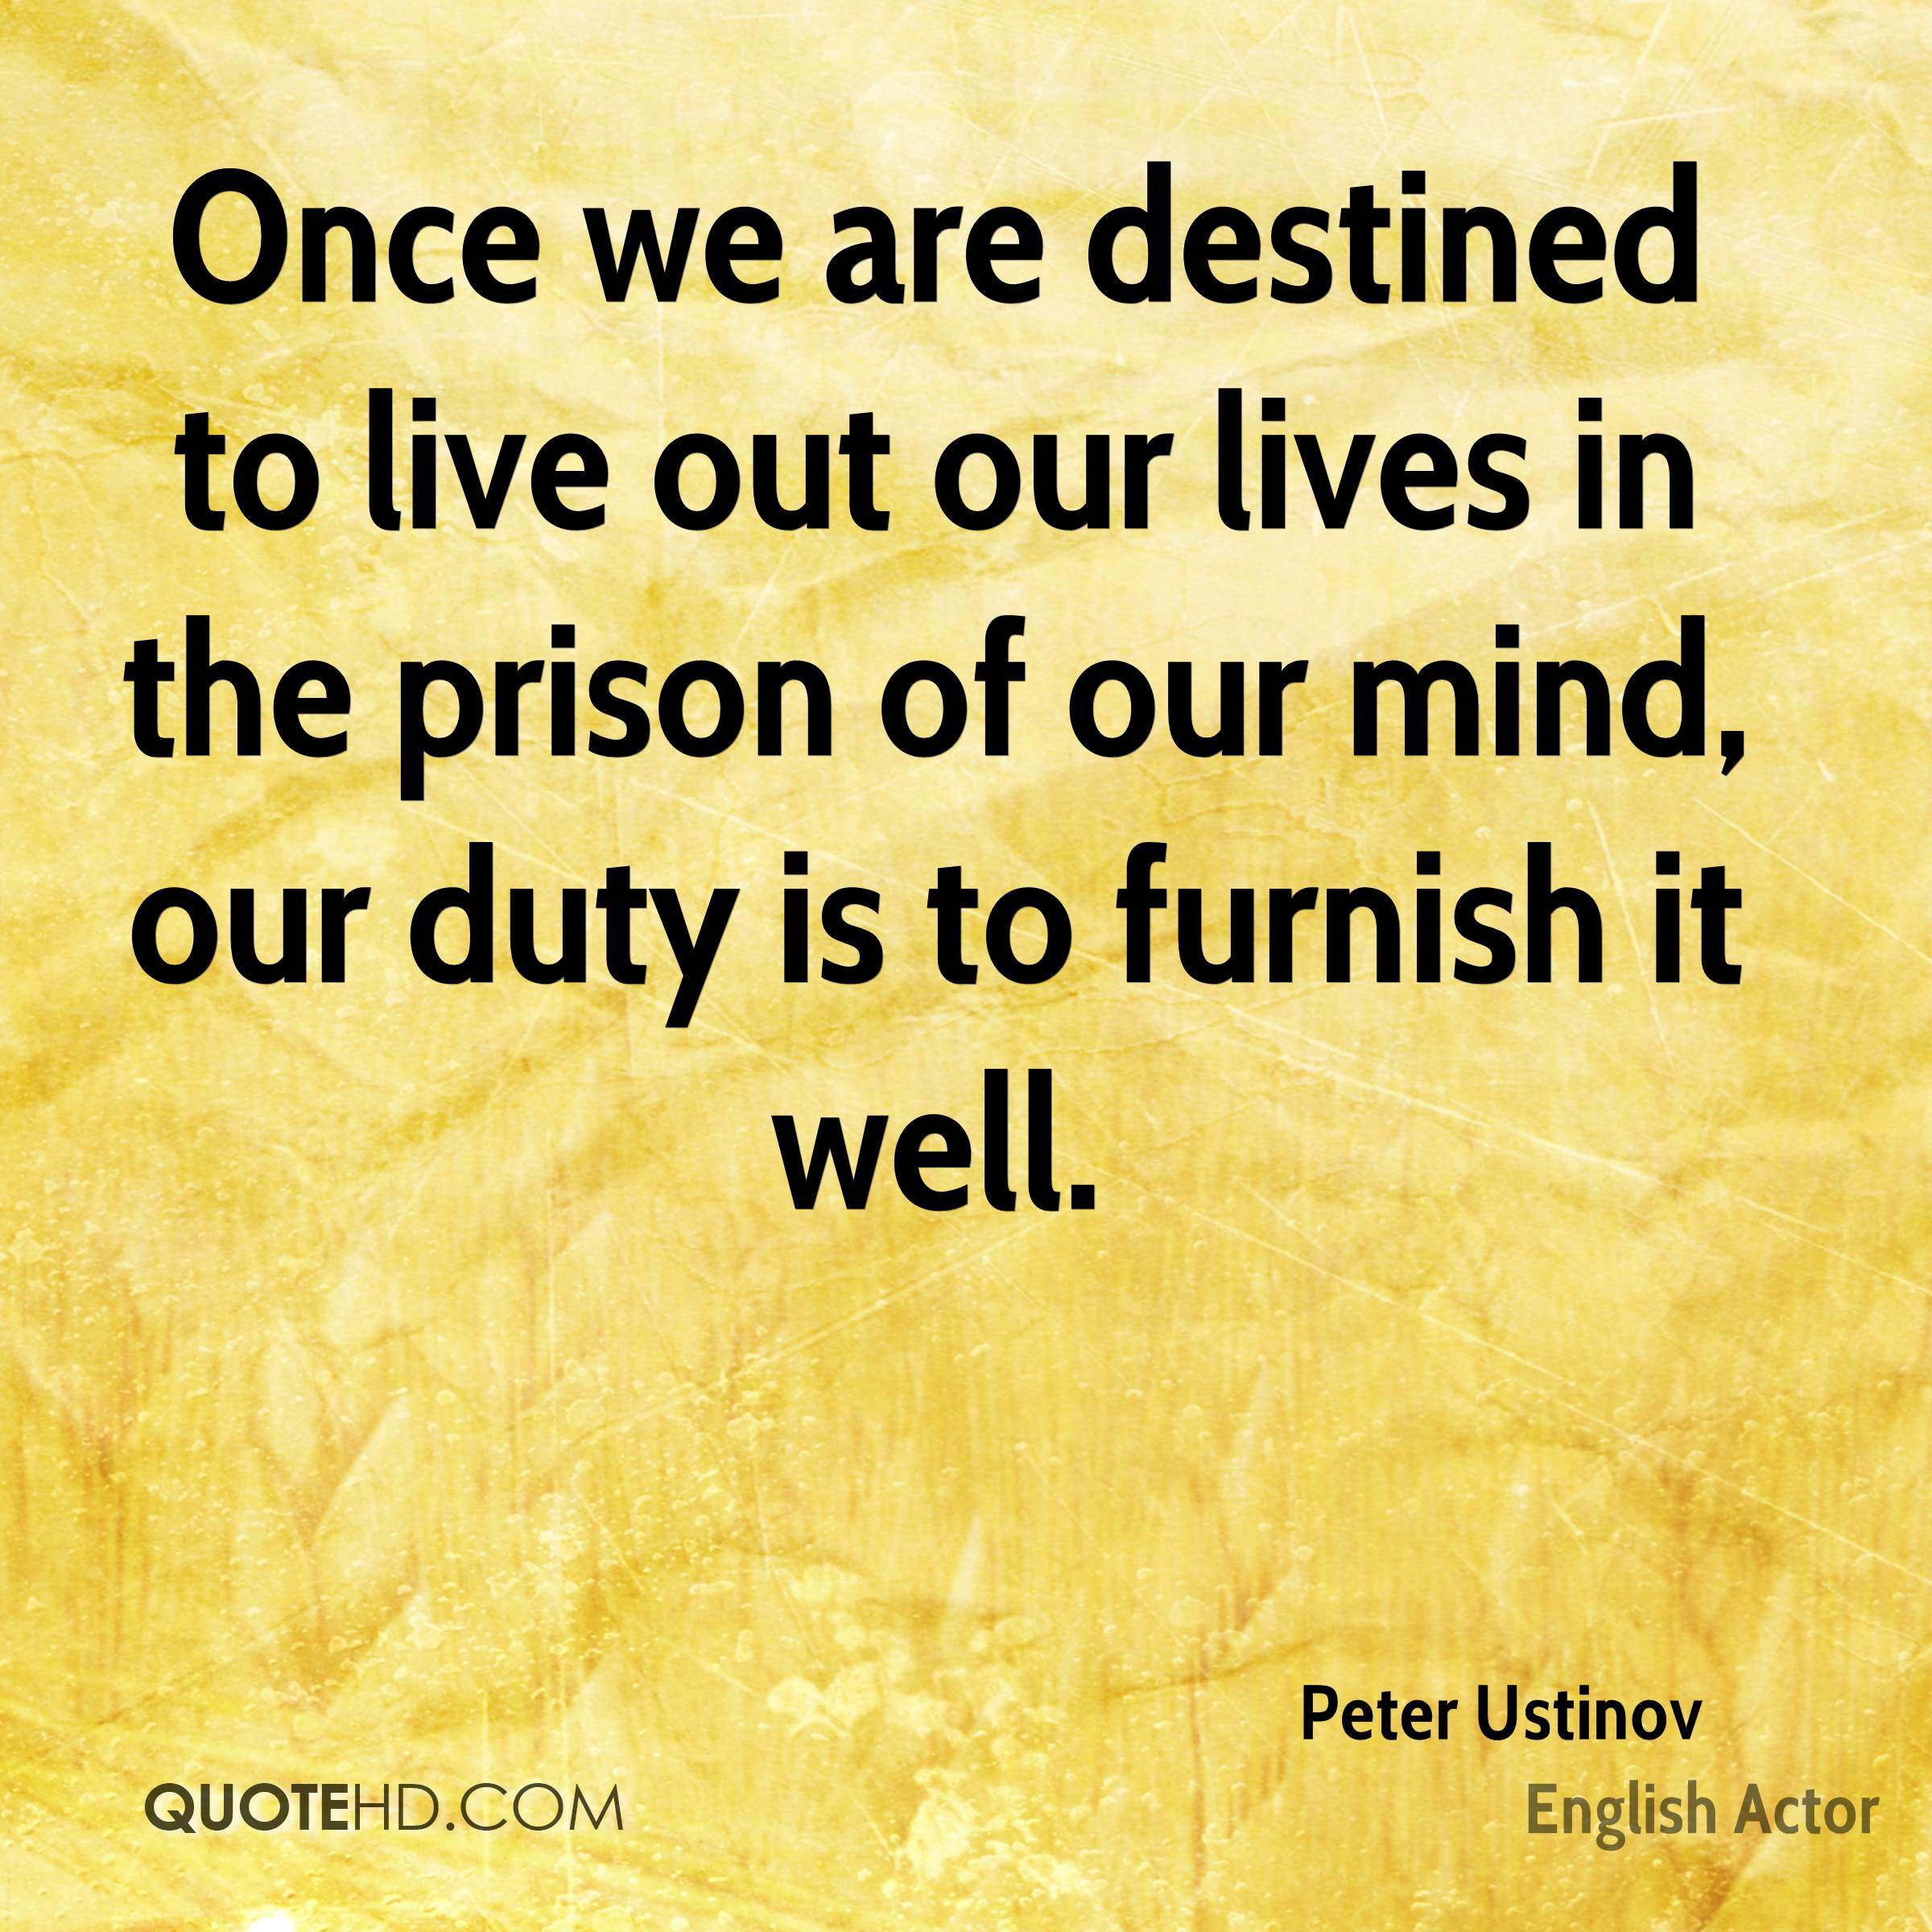 Once we are destined to live out our lives in the prison of our mind, our duty is to furnish it well.